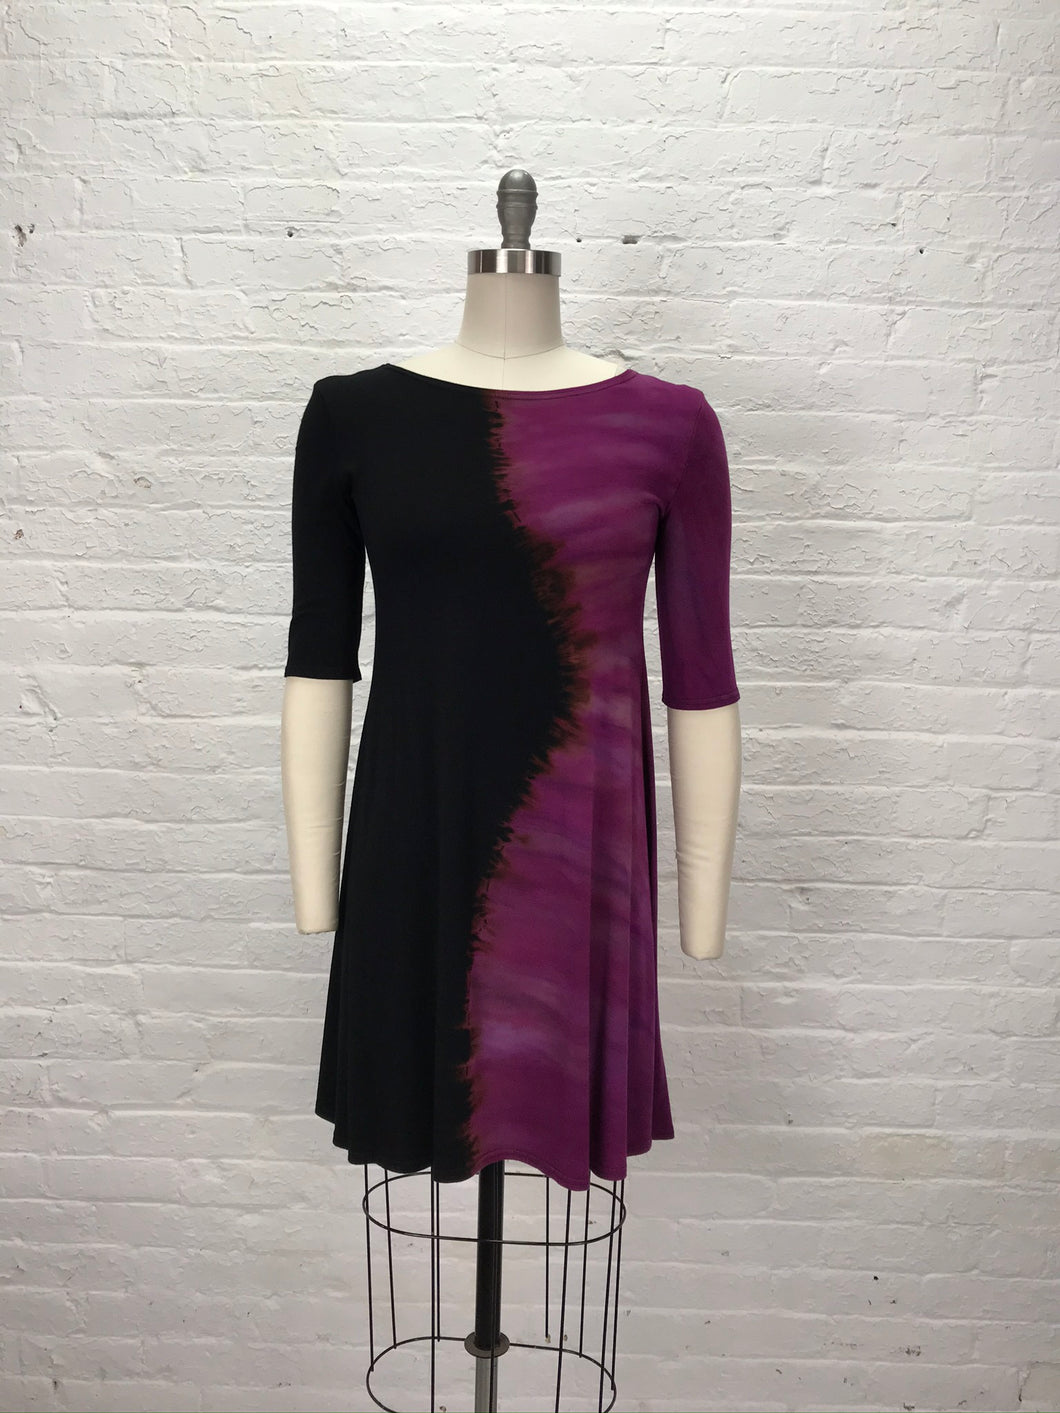 LUCY TUNIC in Pomegranate Ying Yang